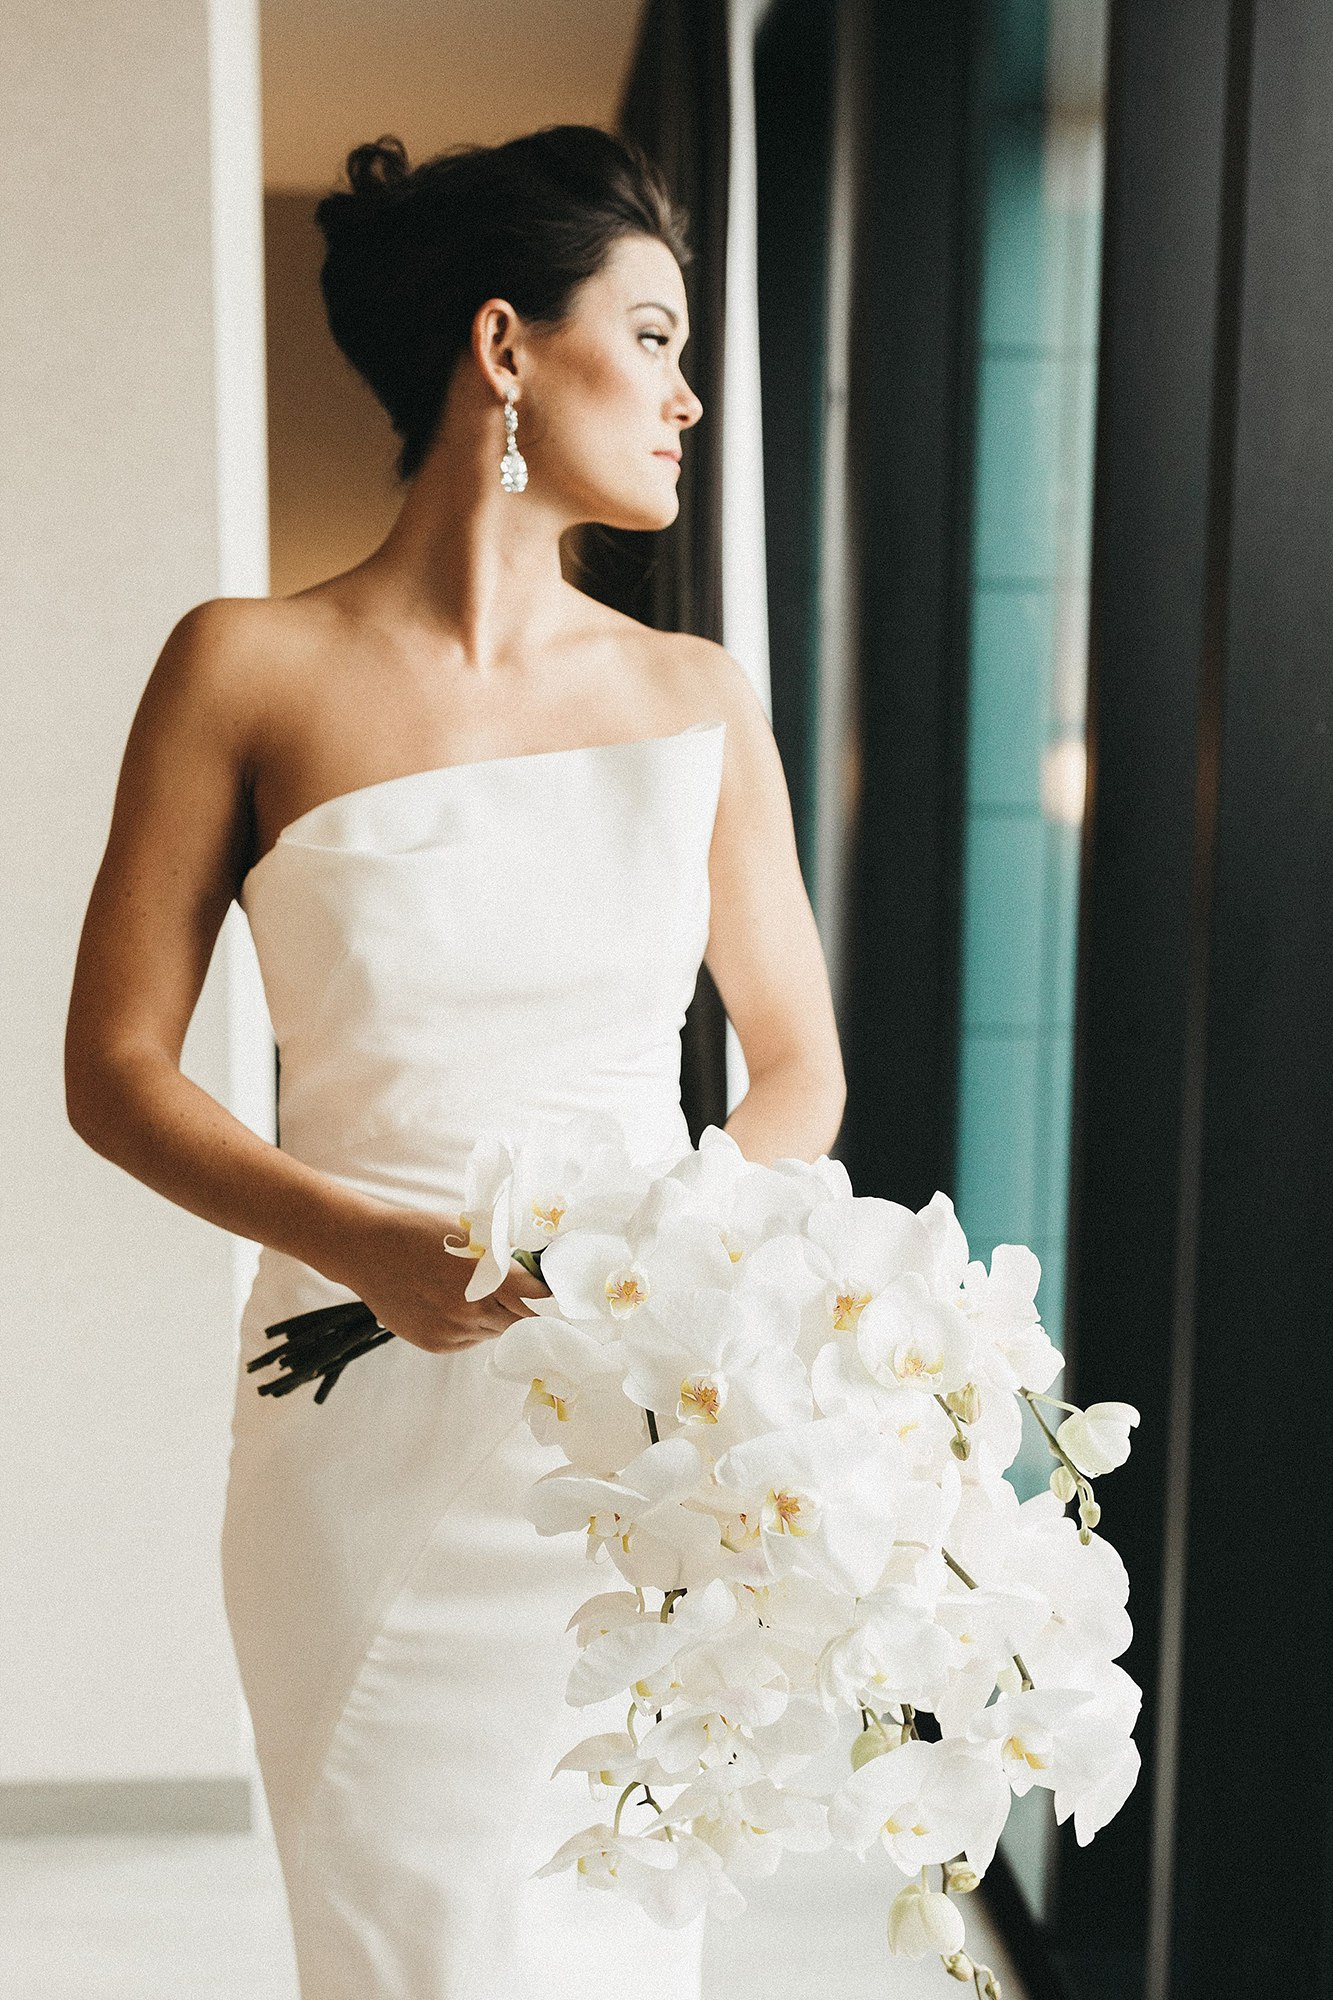 The bride in her asymmetrical gown by J. Mendel and her asymmetrical orchid bouquet